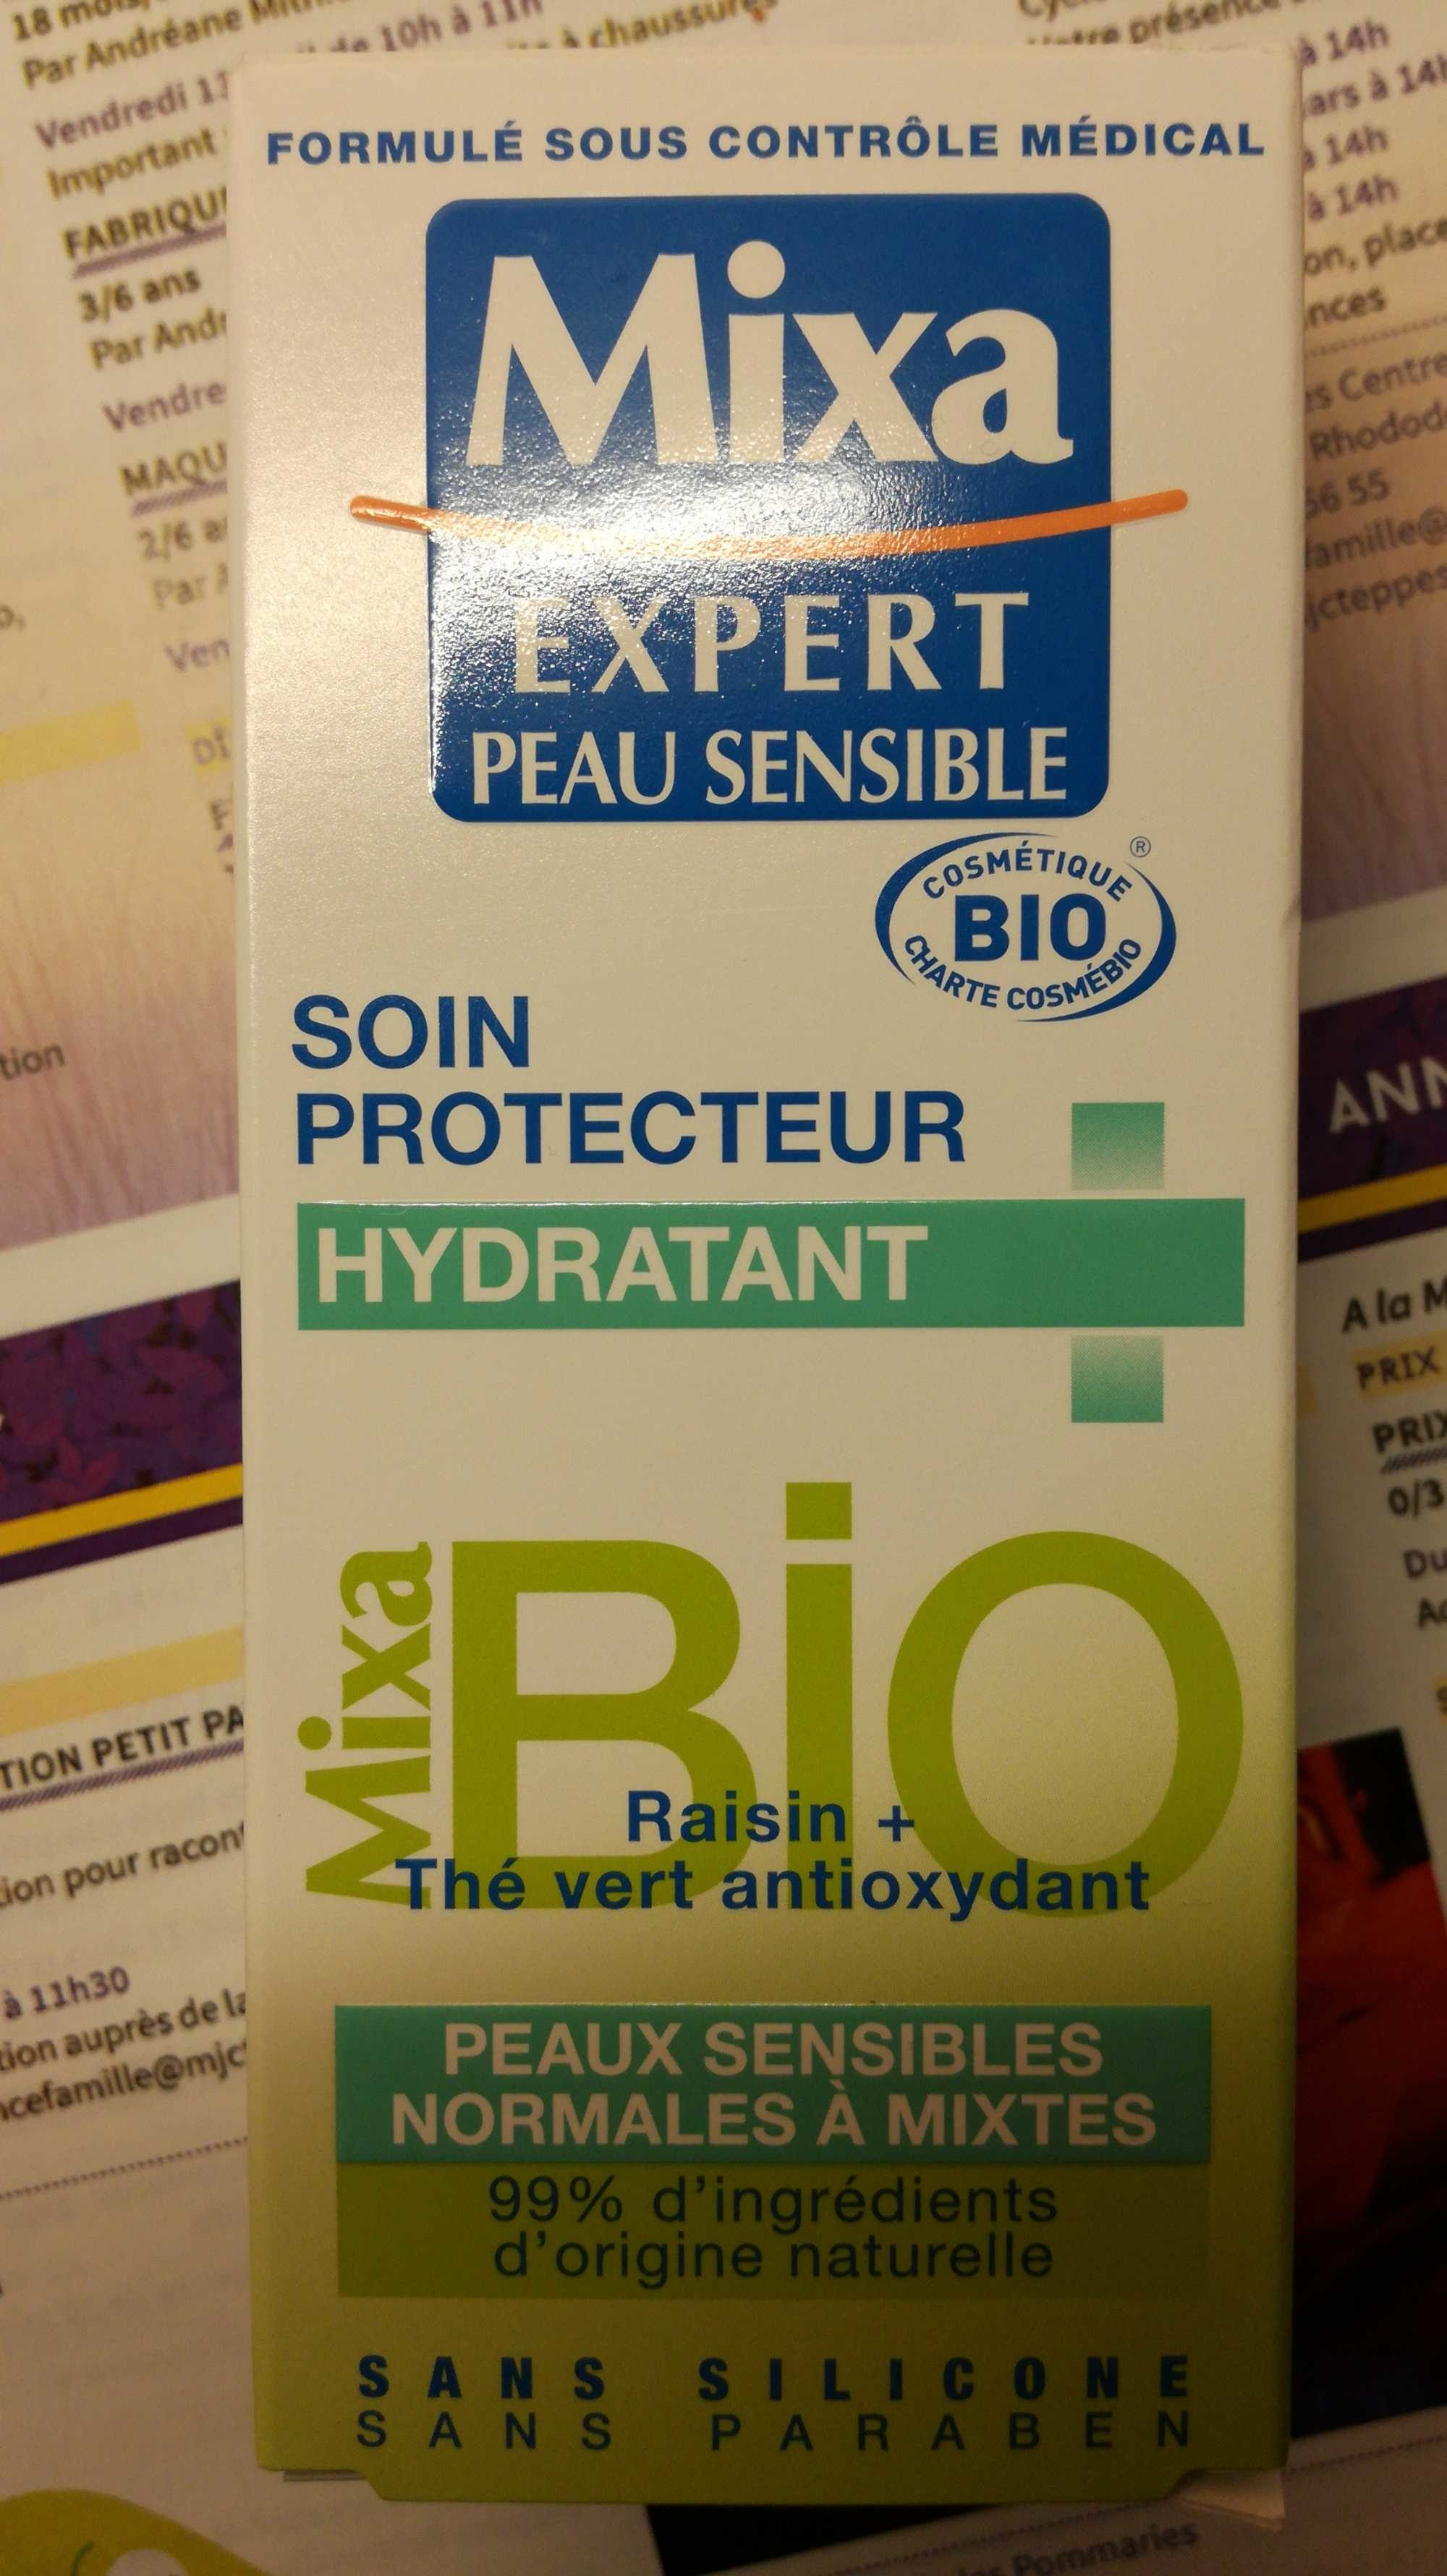 Soin protecteur hydratant bio - Product